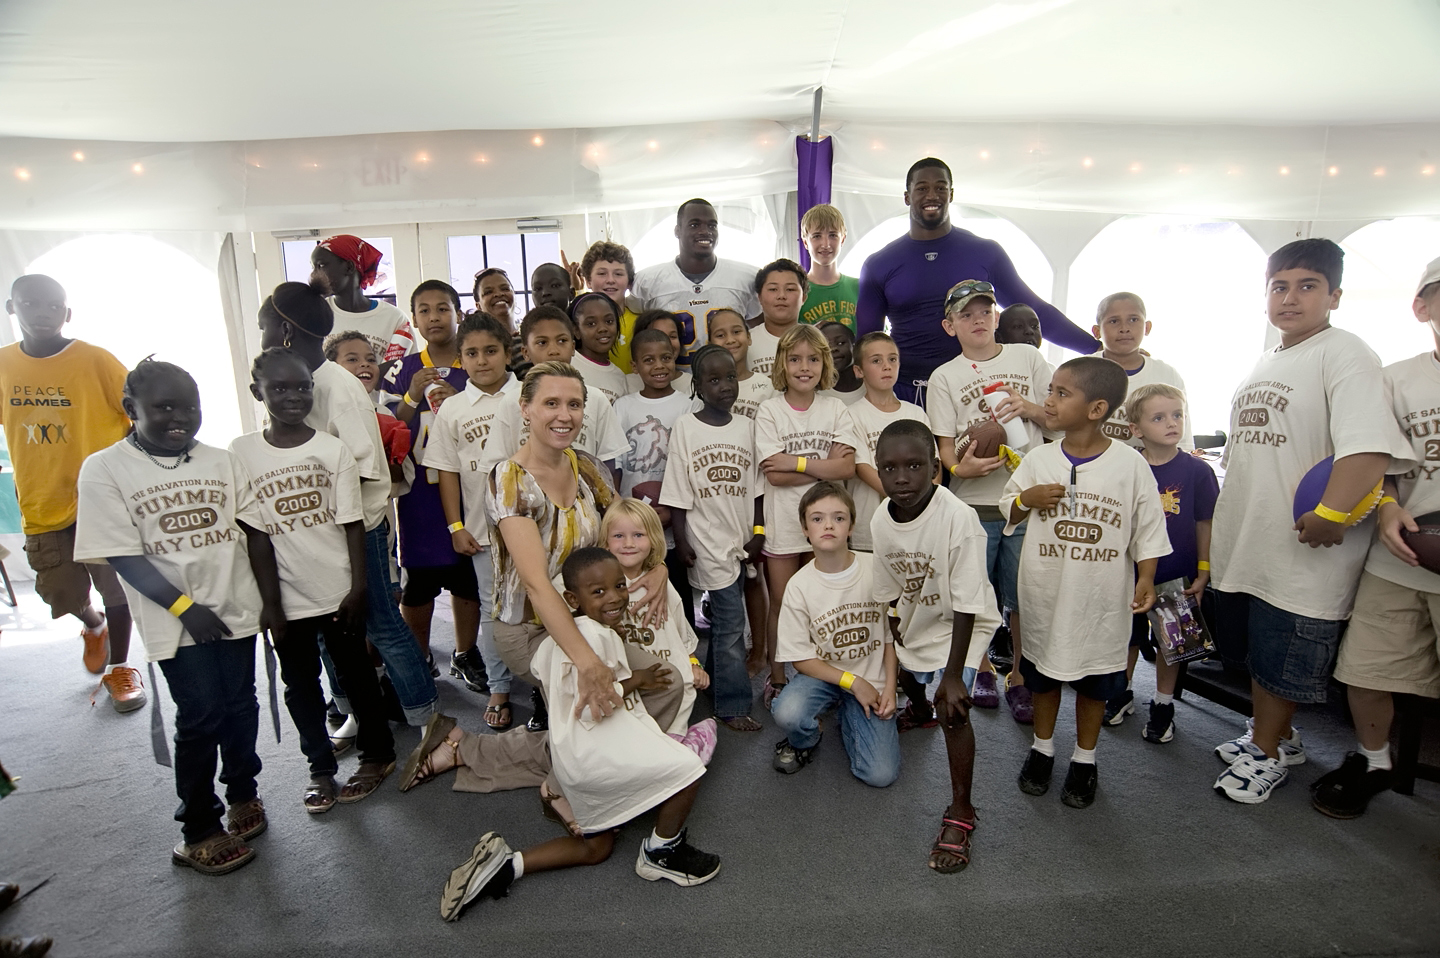 Adrian Peterson and Ray Edwards of the Vikings - with kids